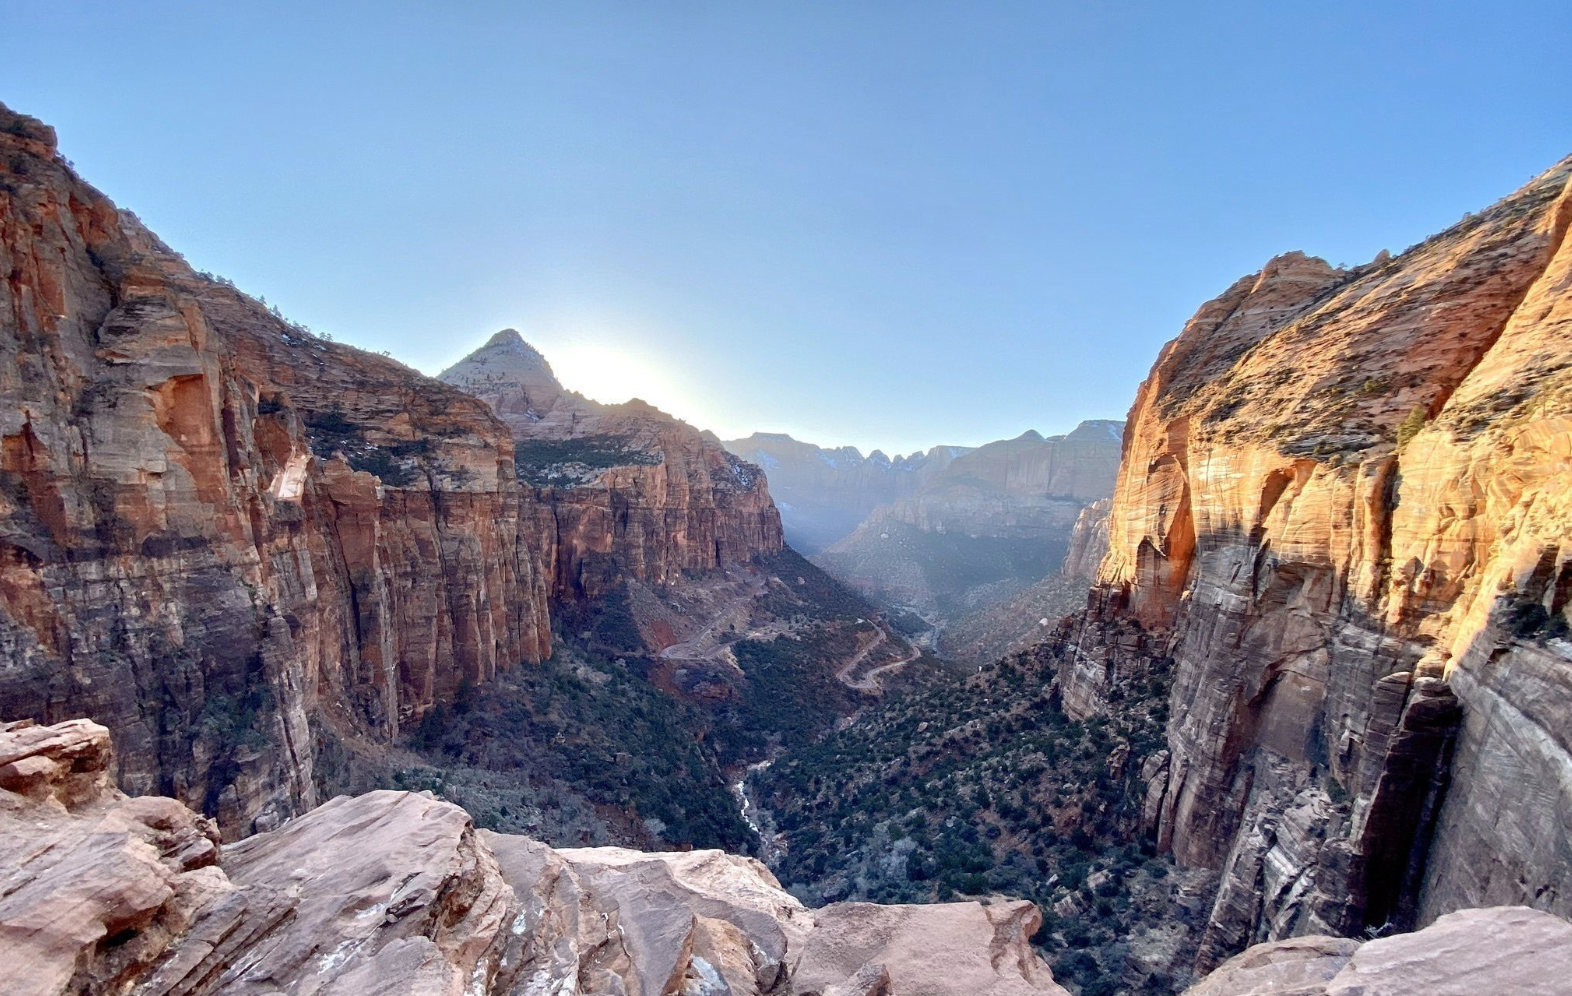 Off The Beaten Path In Zion National Park, You'll Find A Breathtaking Utah Overlook That Lets You See For Miles